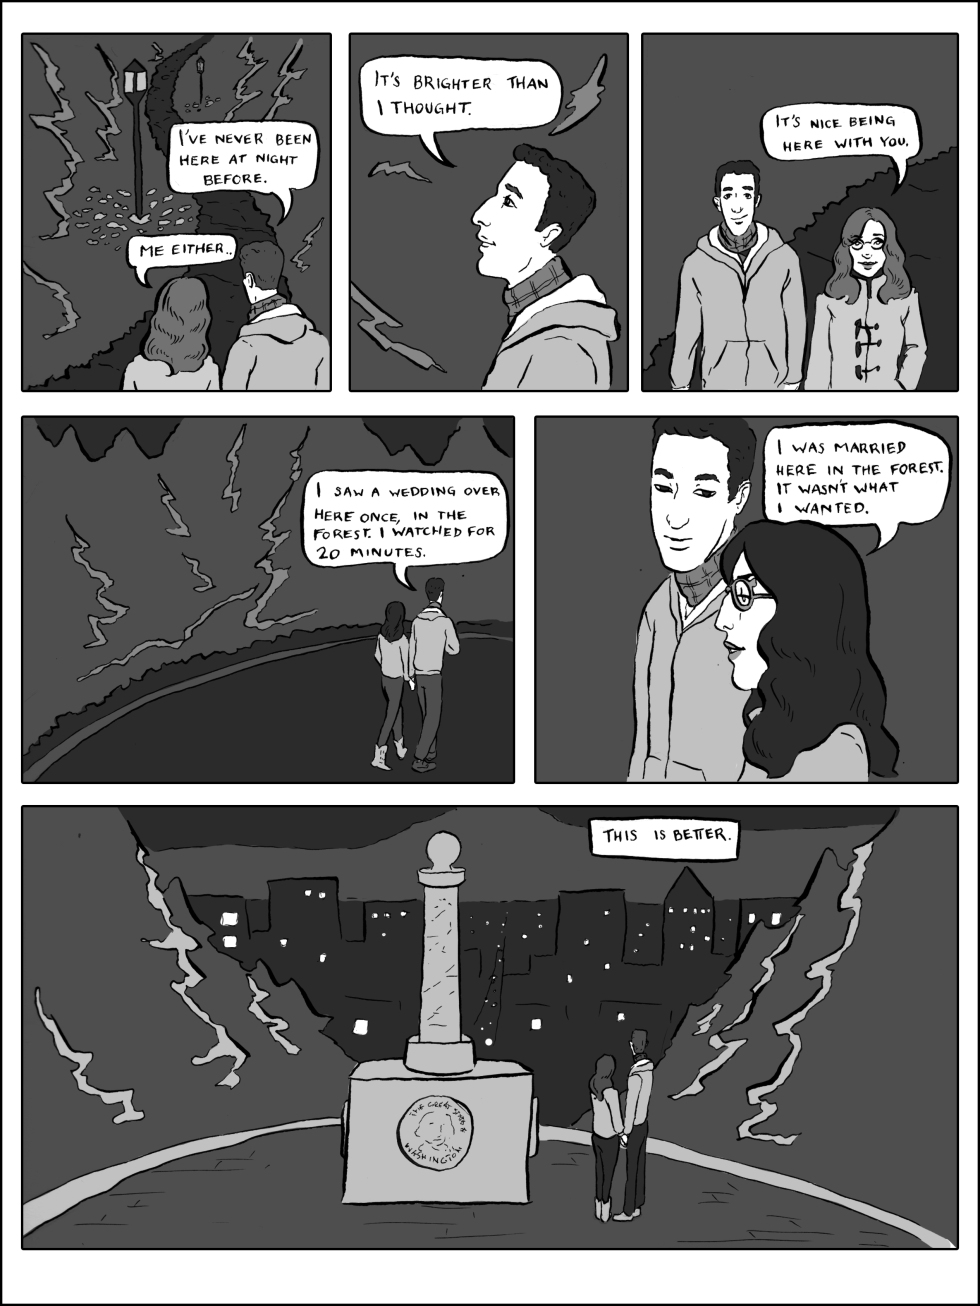 Night Walk comic illustrated by Grace Anderson